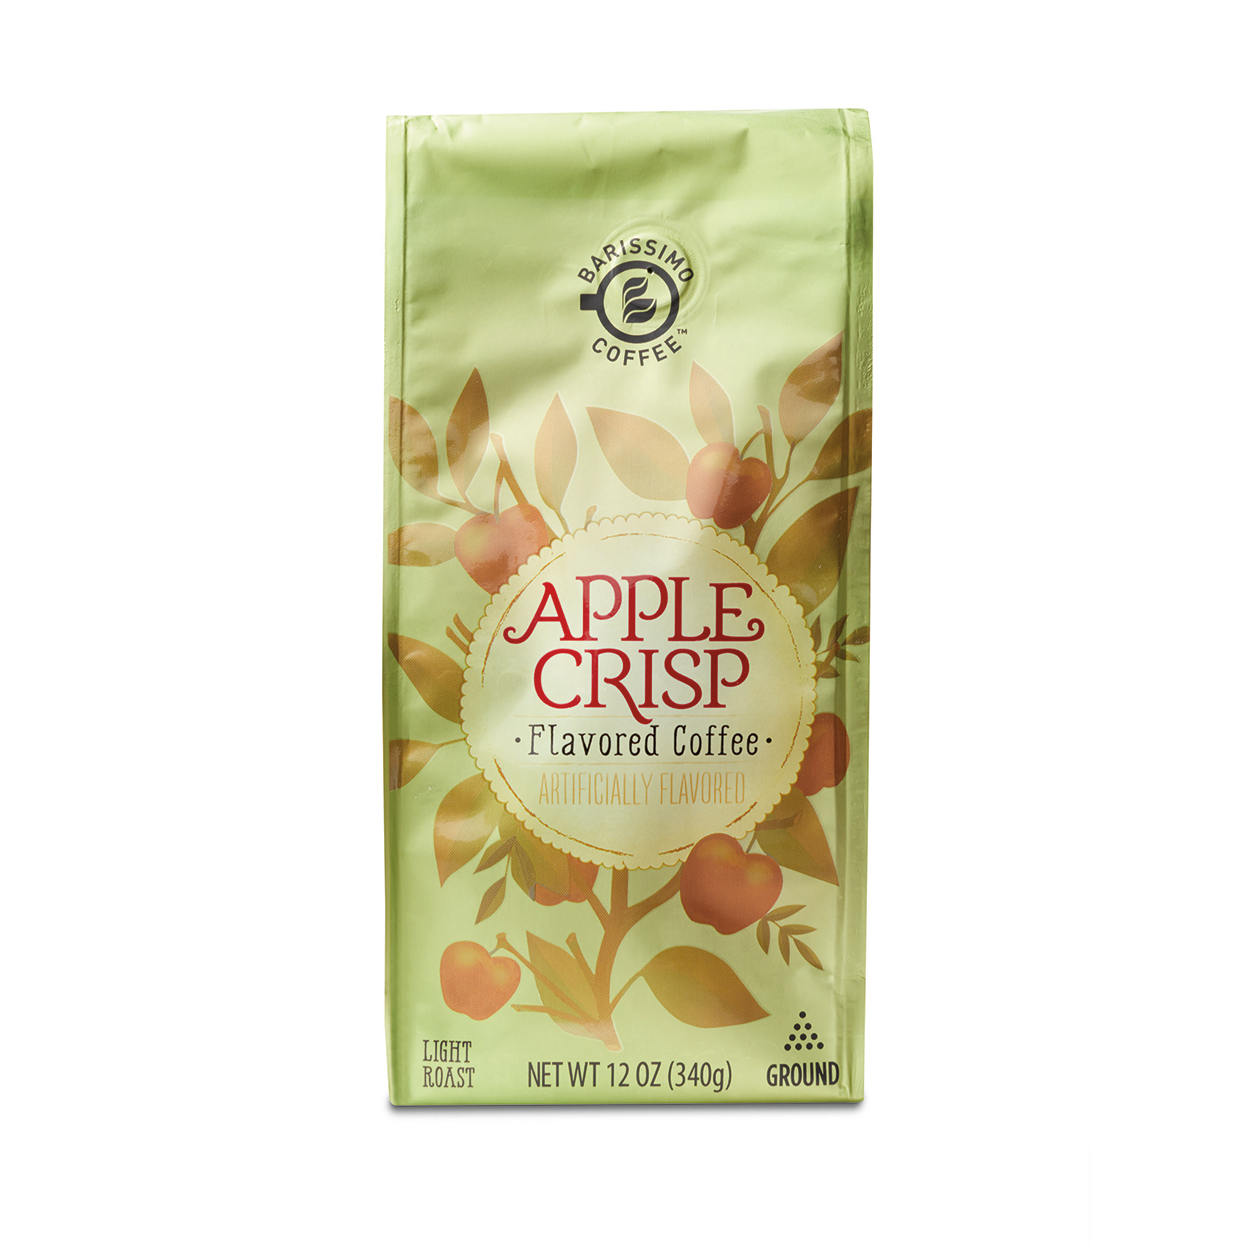 Apple Crisp ground coffee packaging